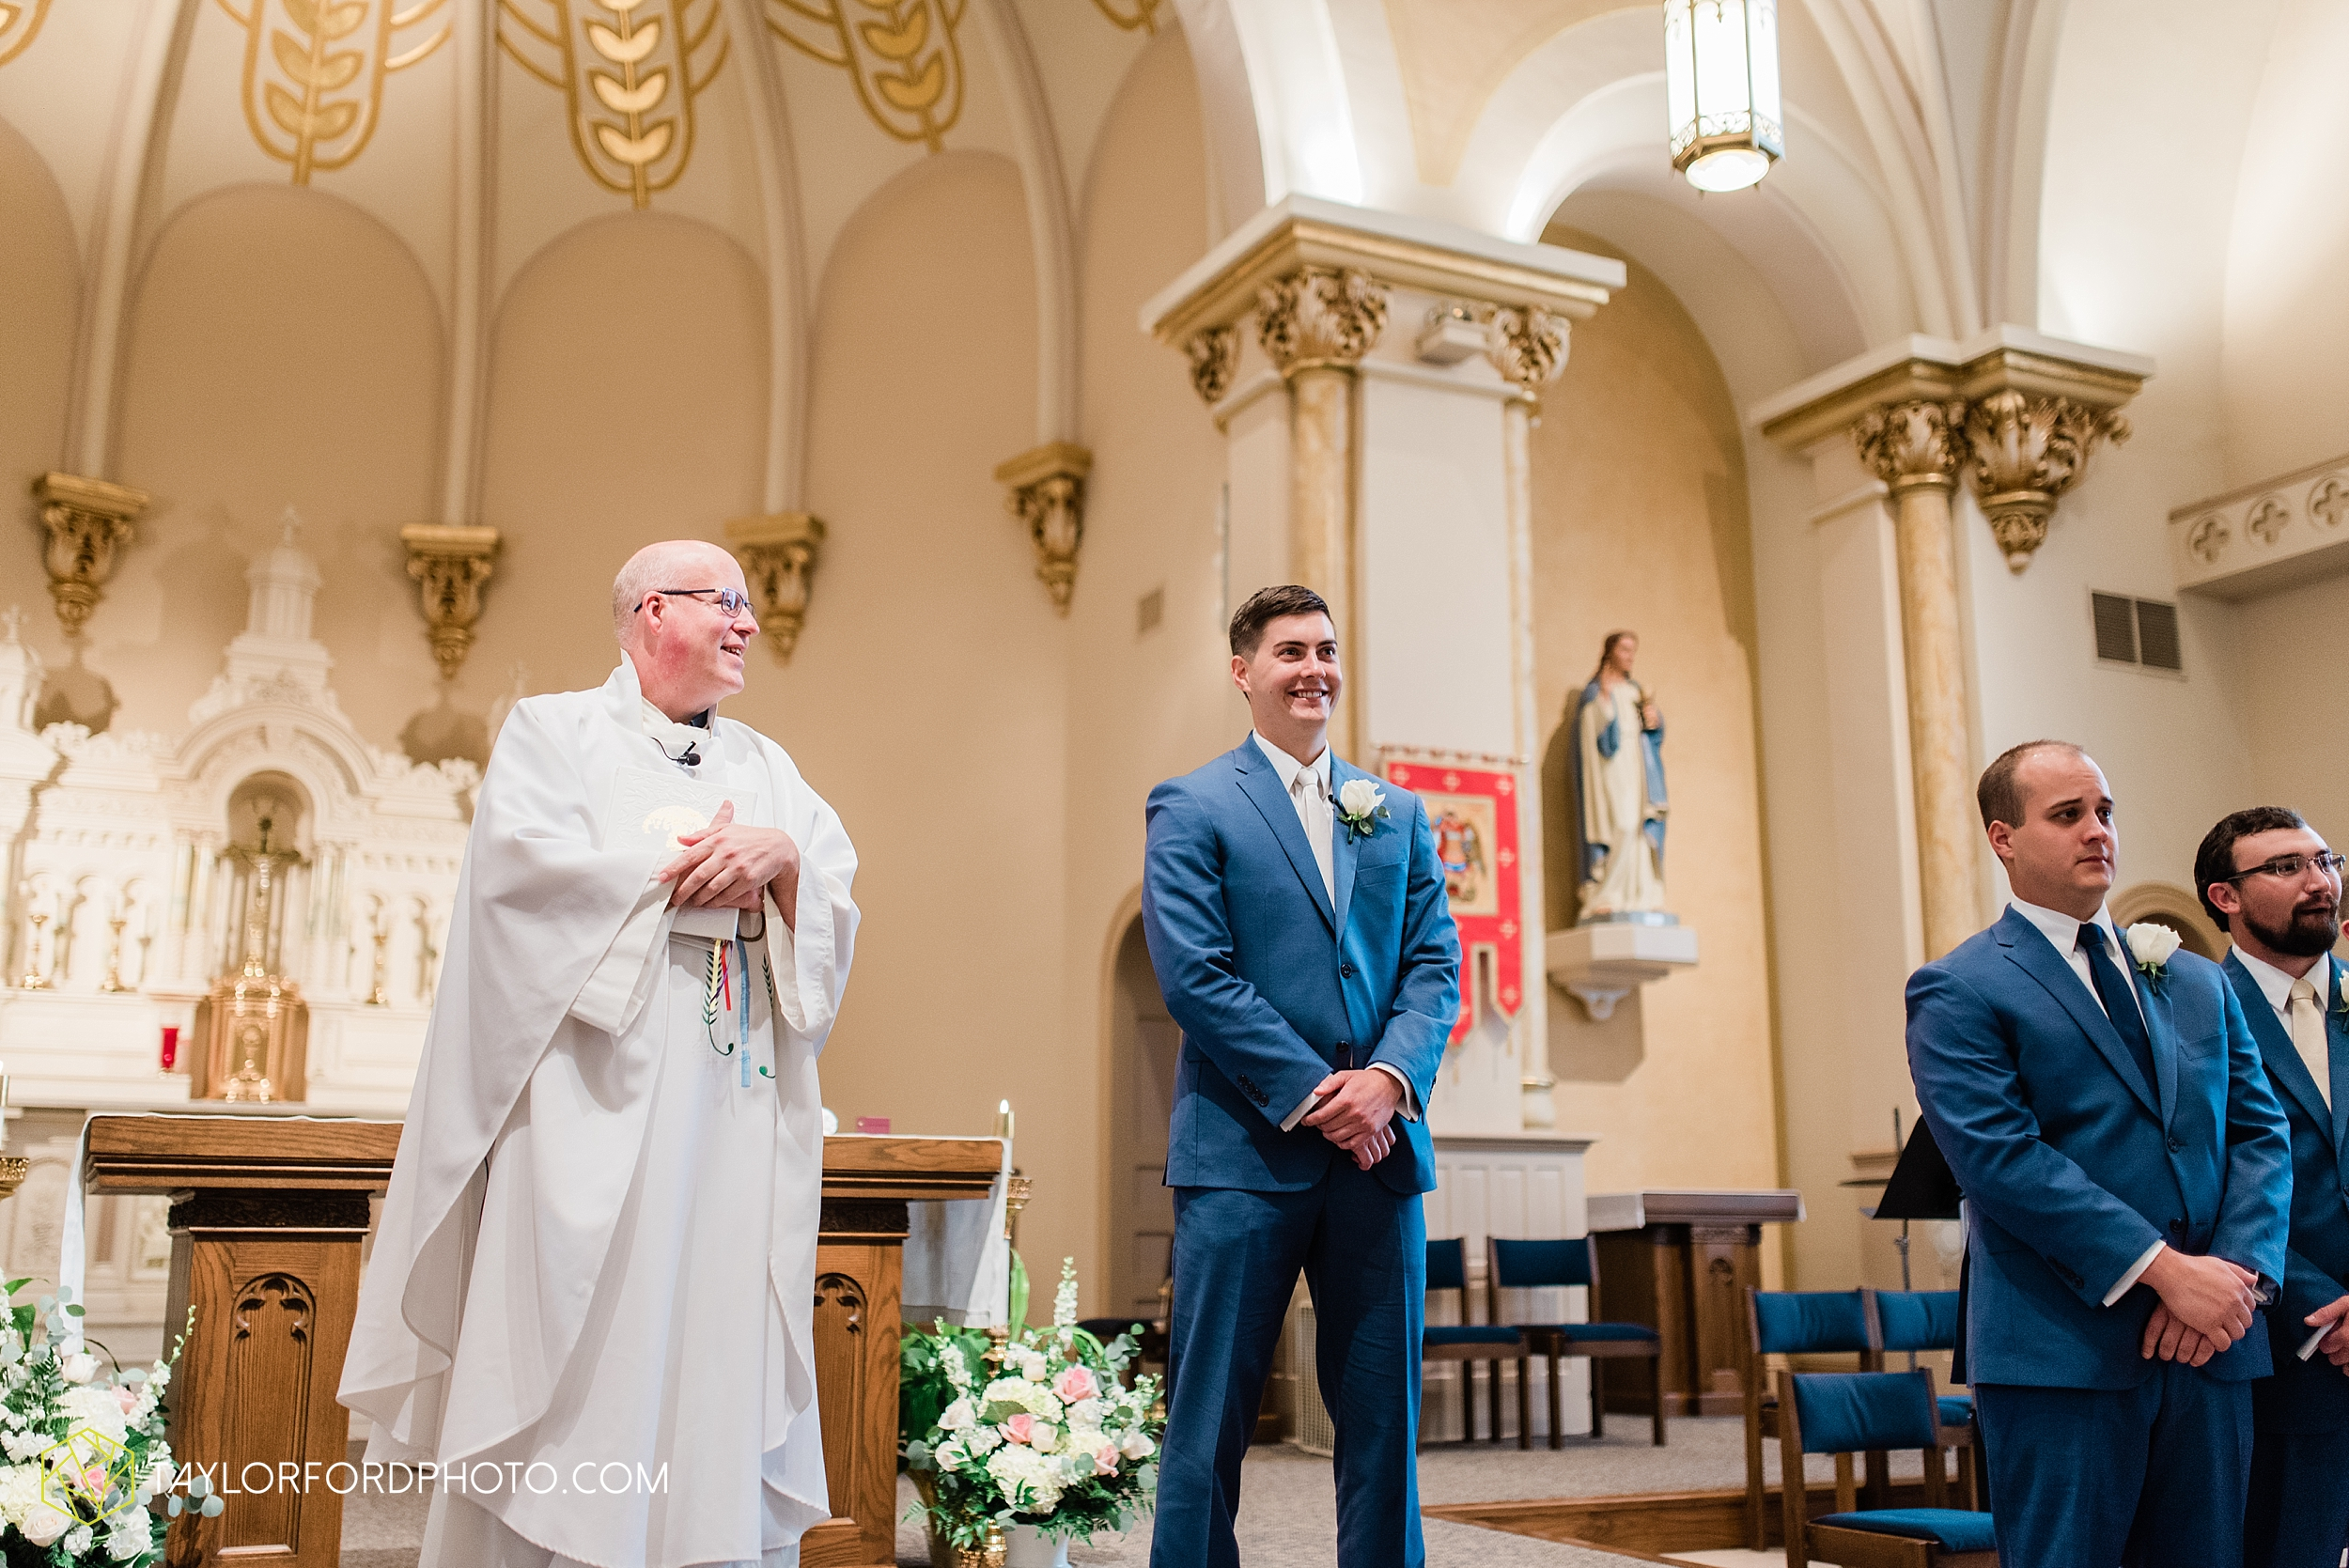 kacee-haden-sholl-second-story-saint-marys-knights-of-columbus-defiance-ohio-wedding-photographer-taylor-ford-photography_0149.jpg